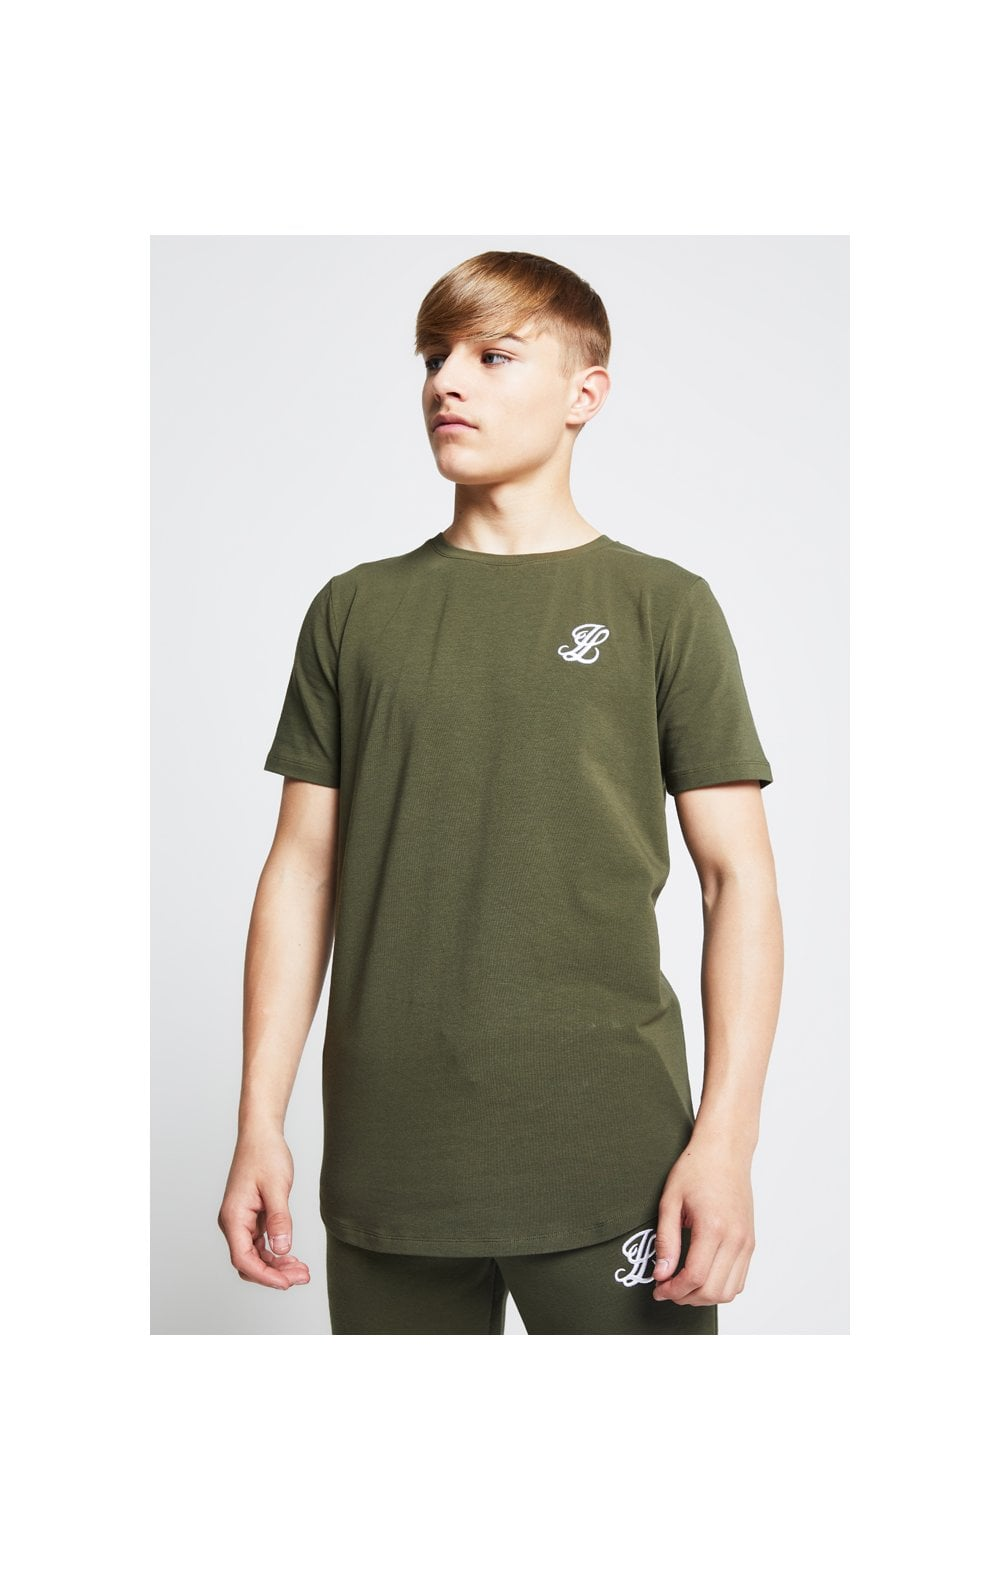 Illusive London Tee – Khaki (1)